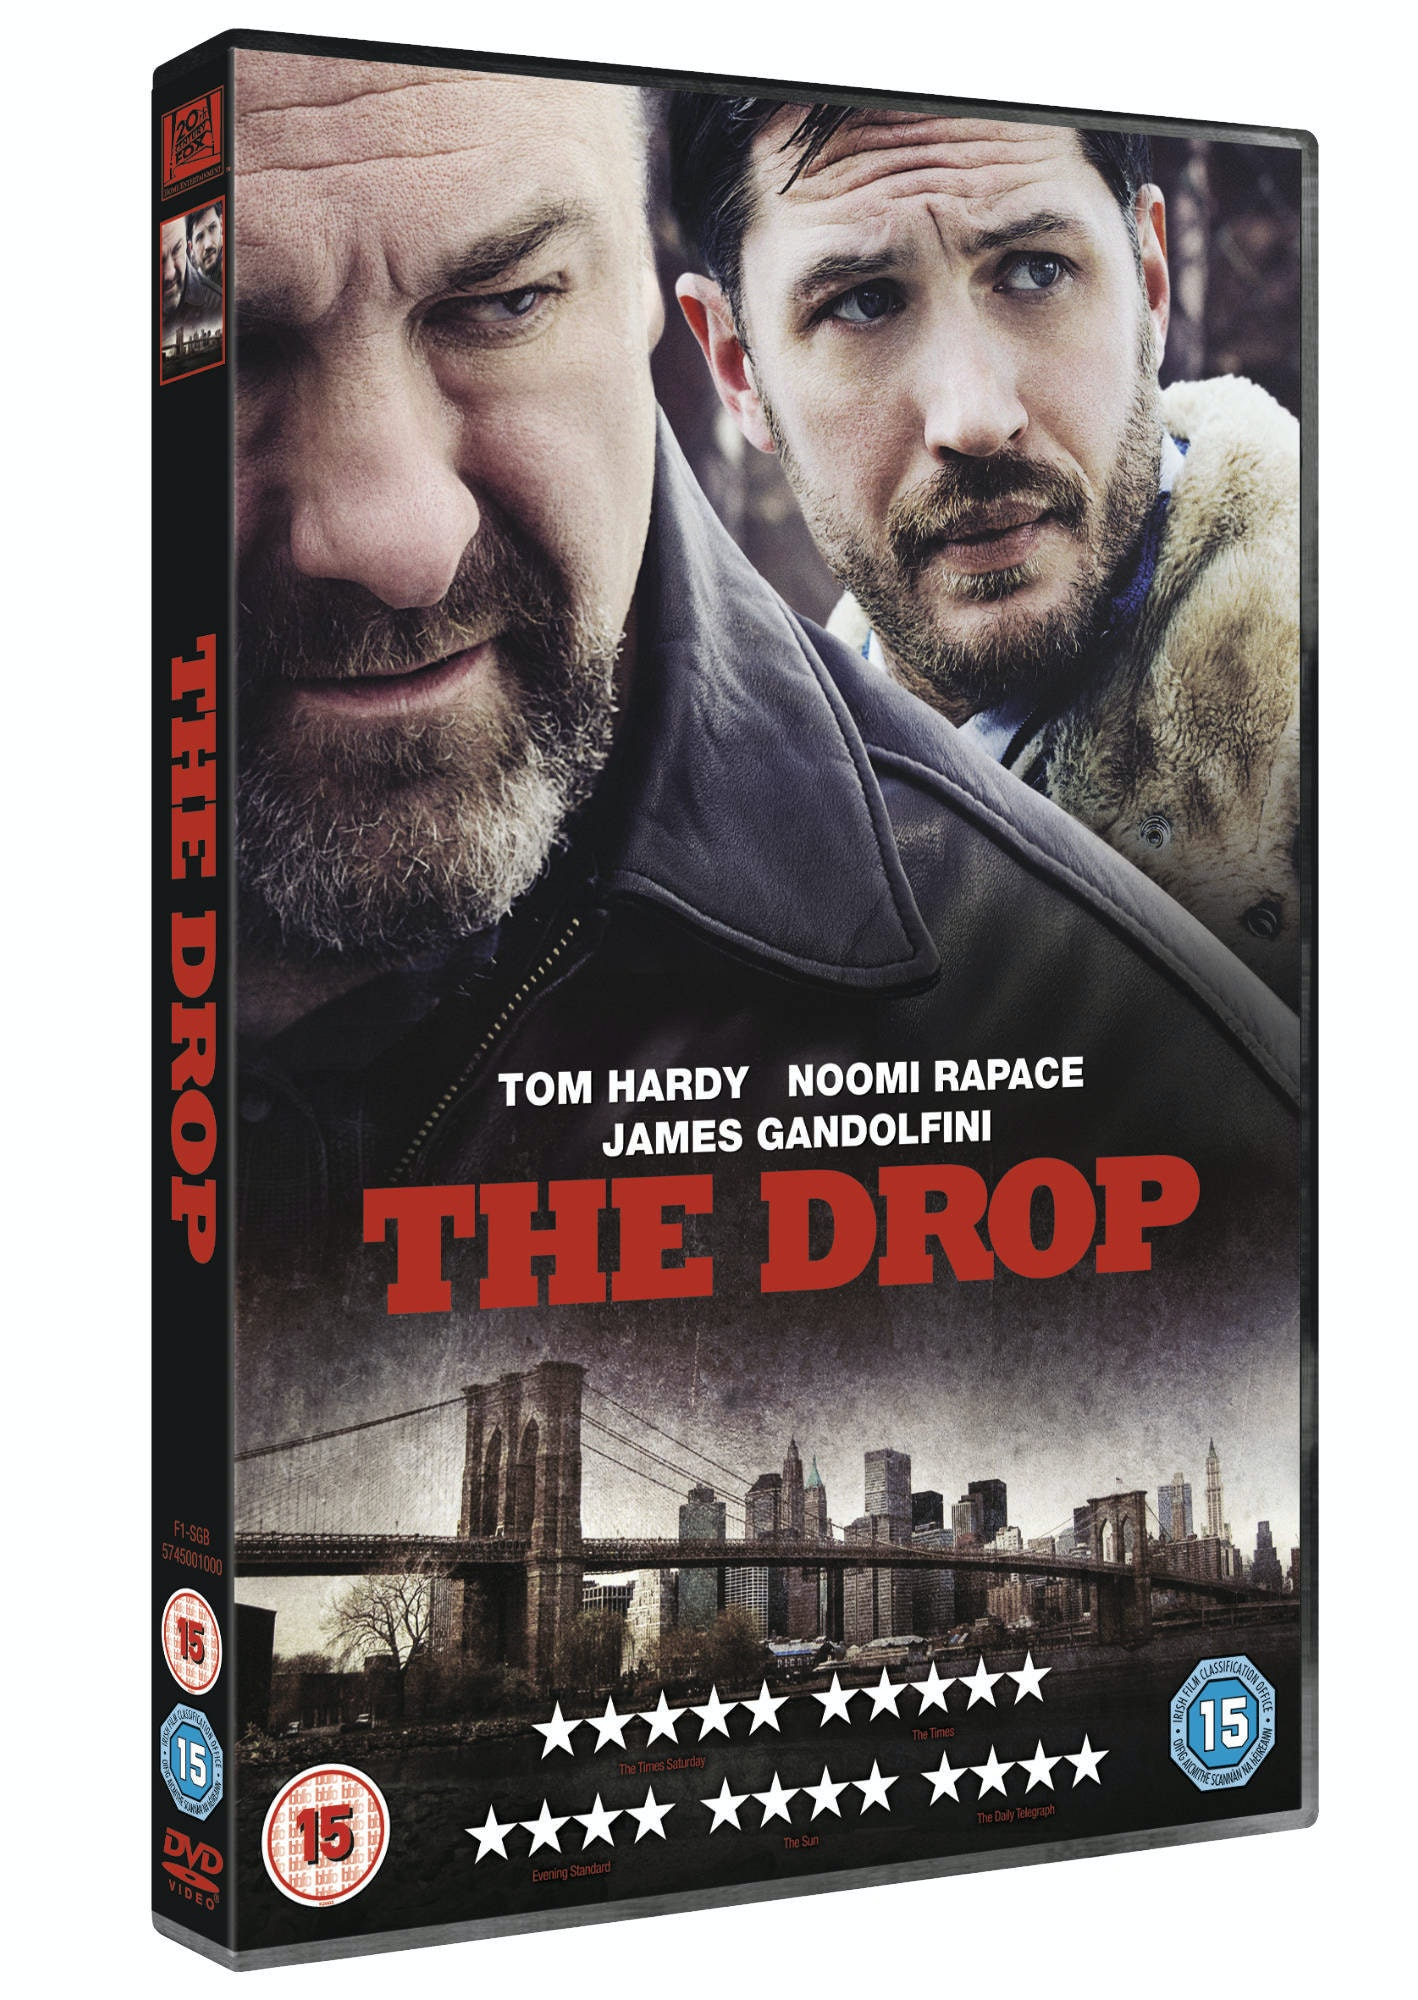 The Drop DVD sweepstakes